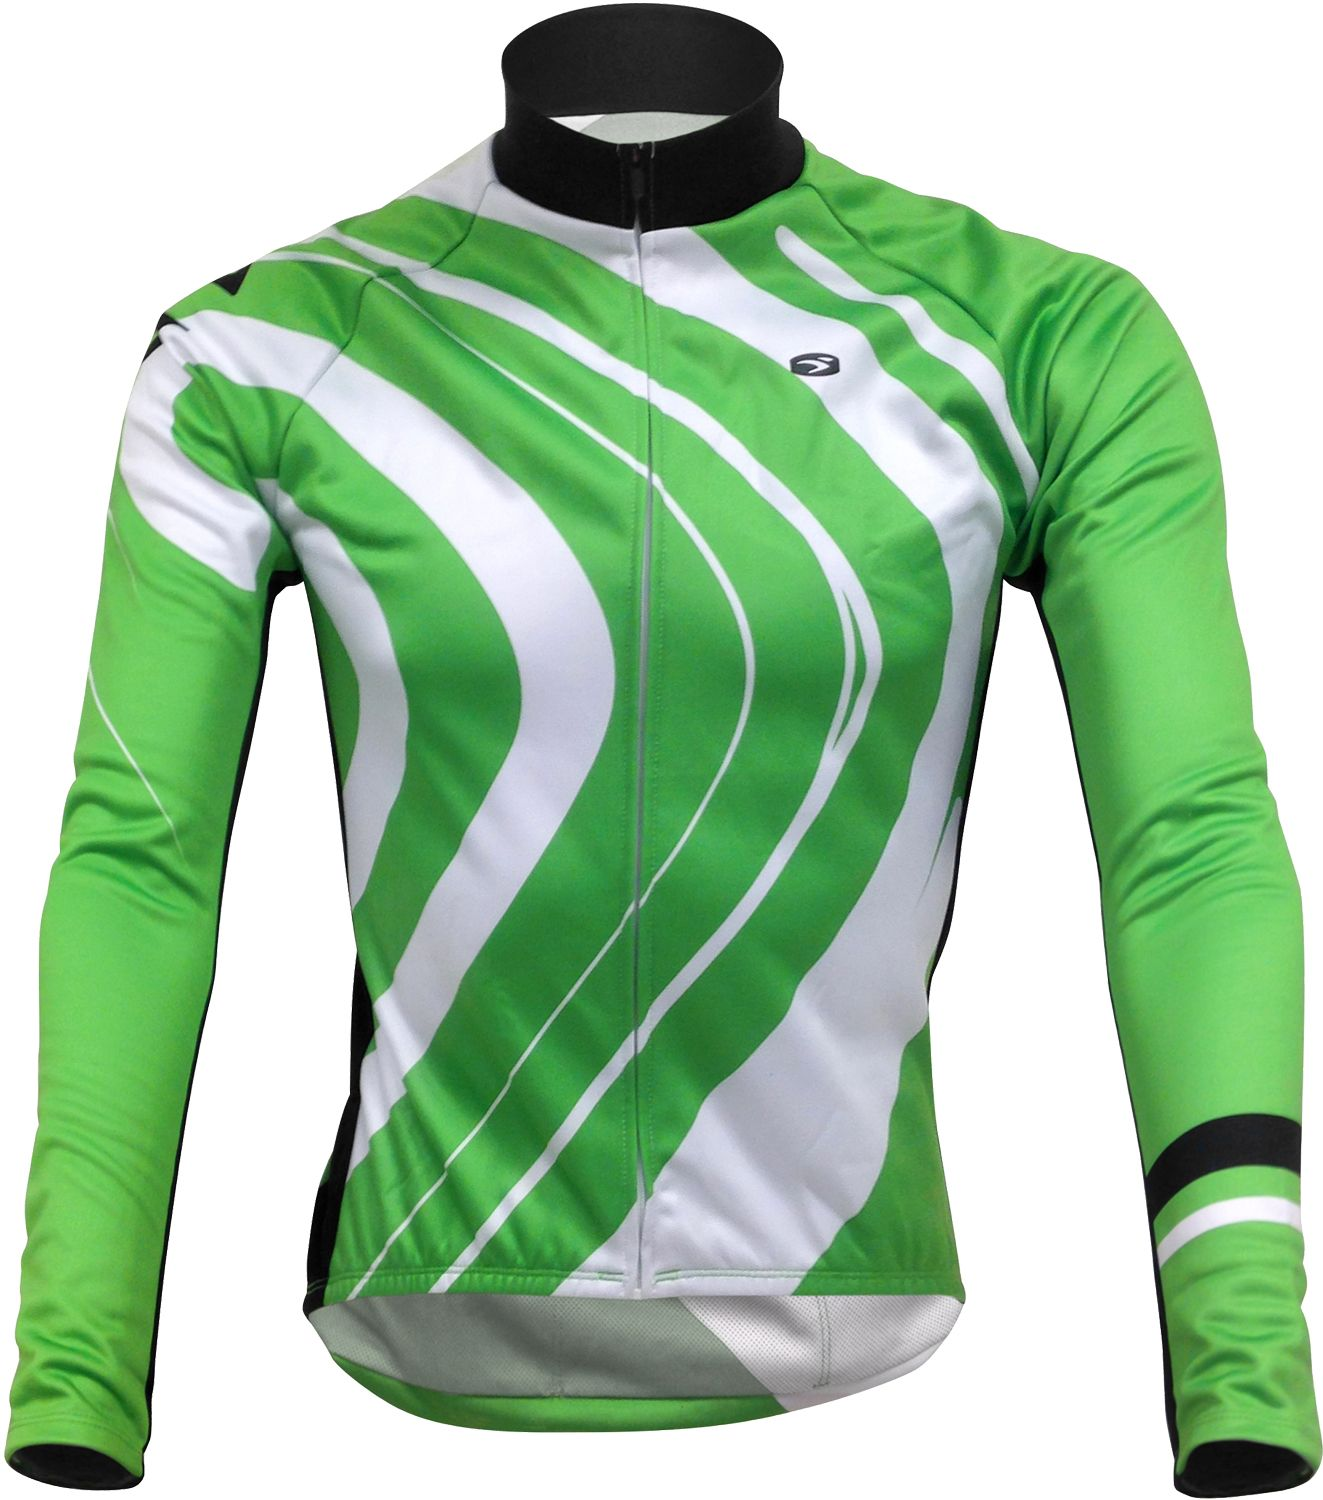 b276a1485 Cannondale EVOLUTION PRO ZAP long sleeve cycling jersey green by Sugoi.  Previous